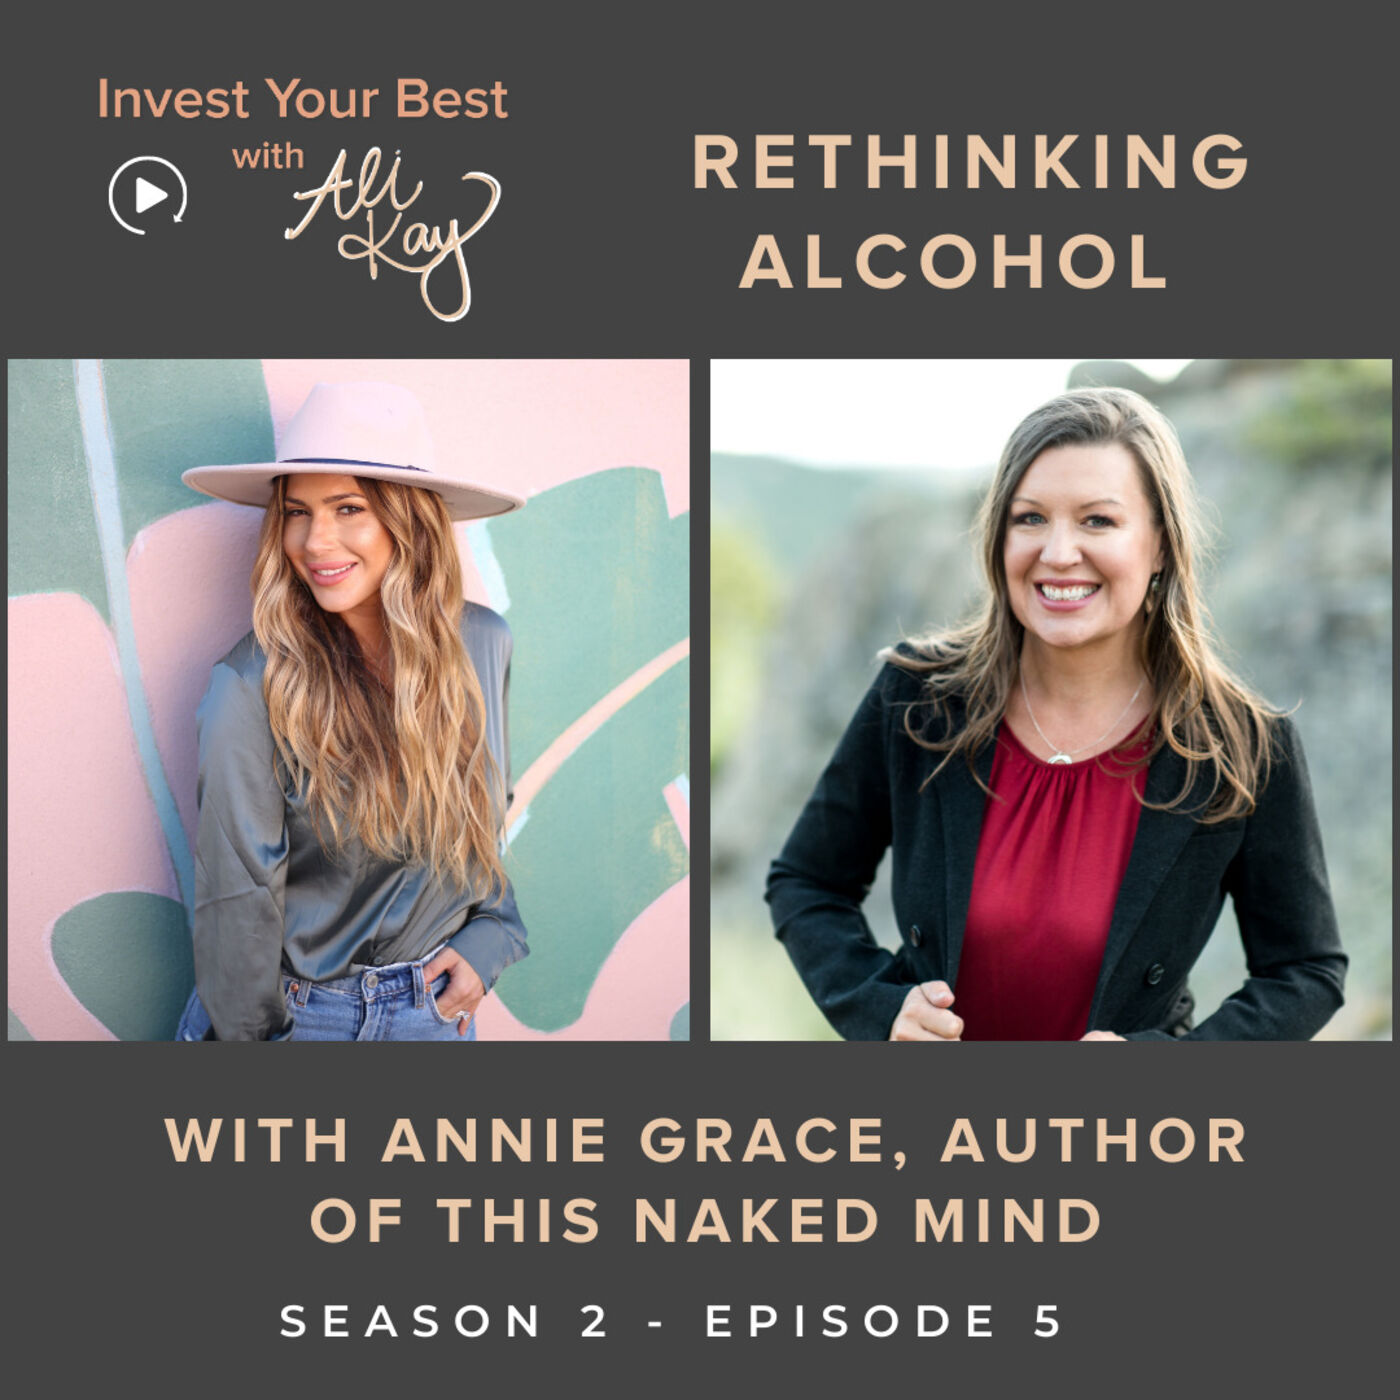 Rethinking Alcohol with Annie Grace, Author of This Naked Mind